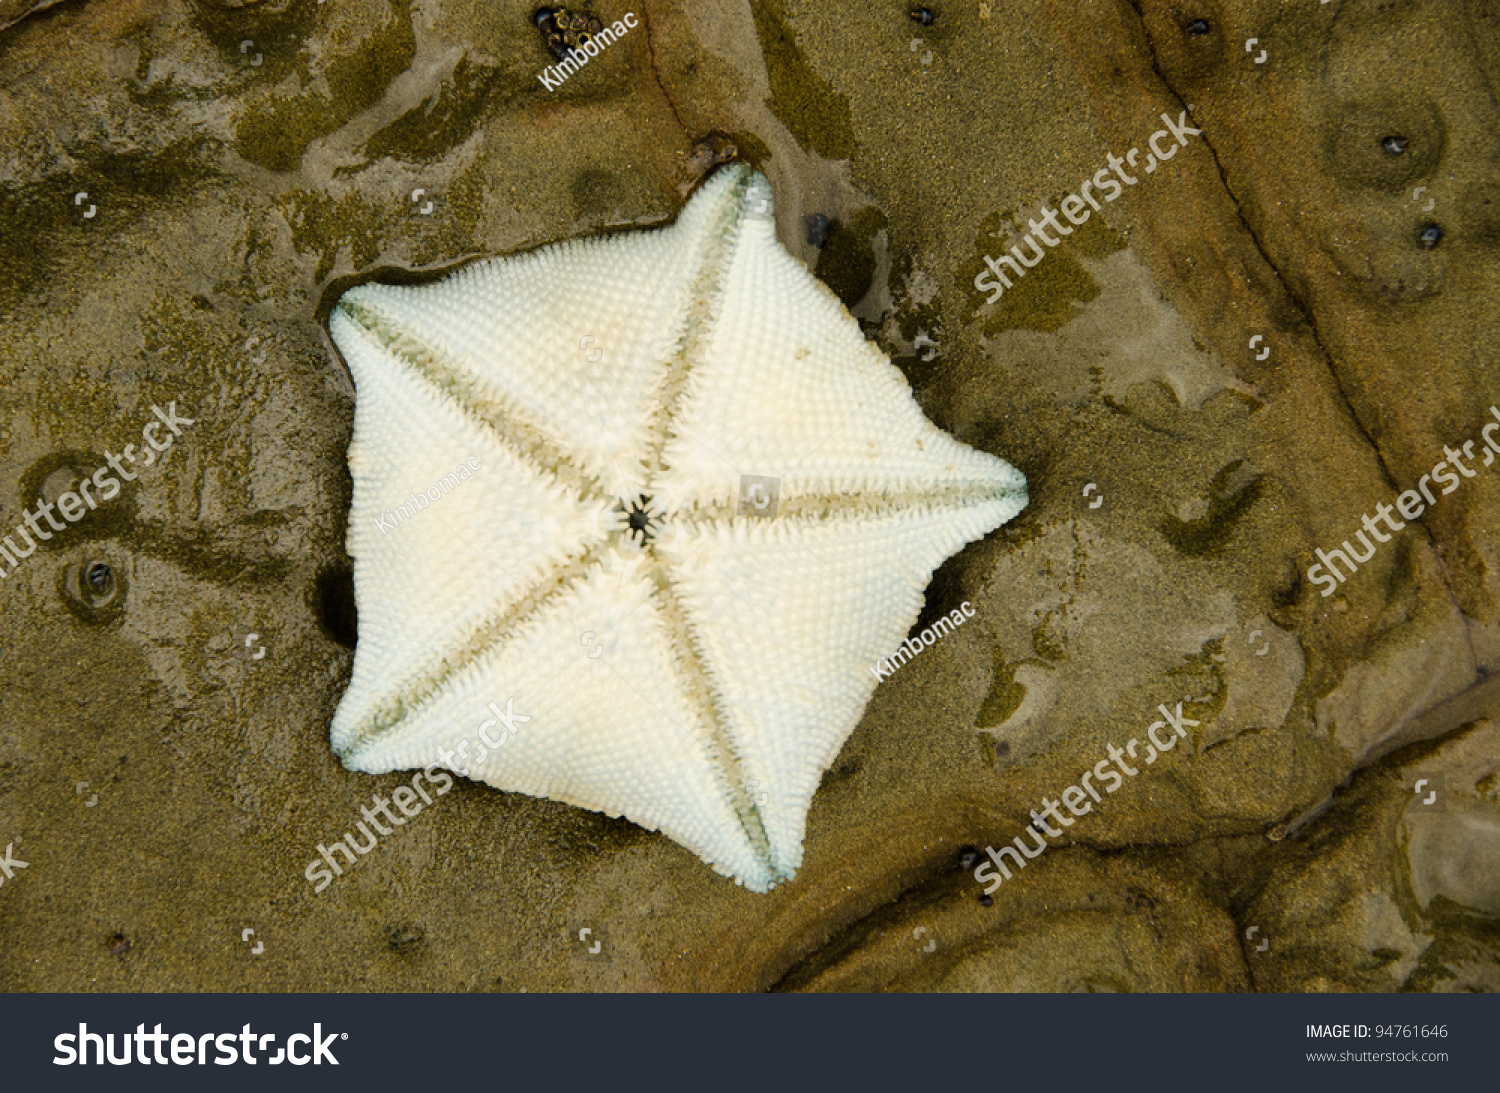 The Underside Of A New Zealand Cushion Sea Star Showing ...